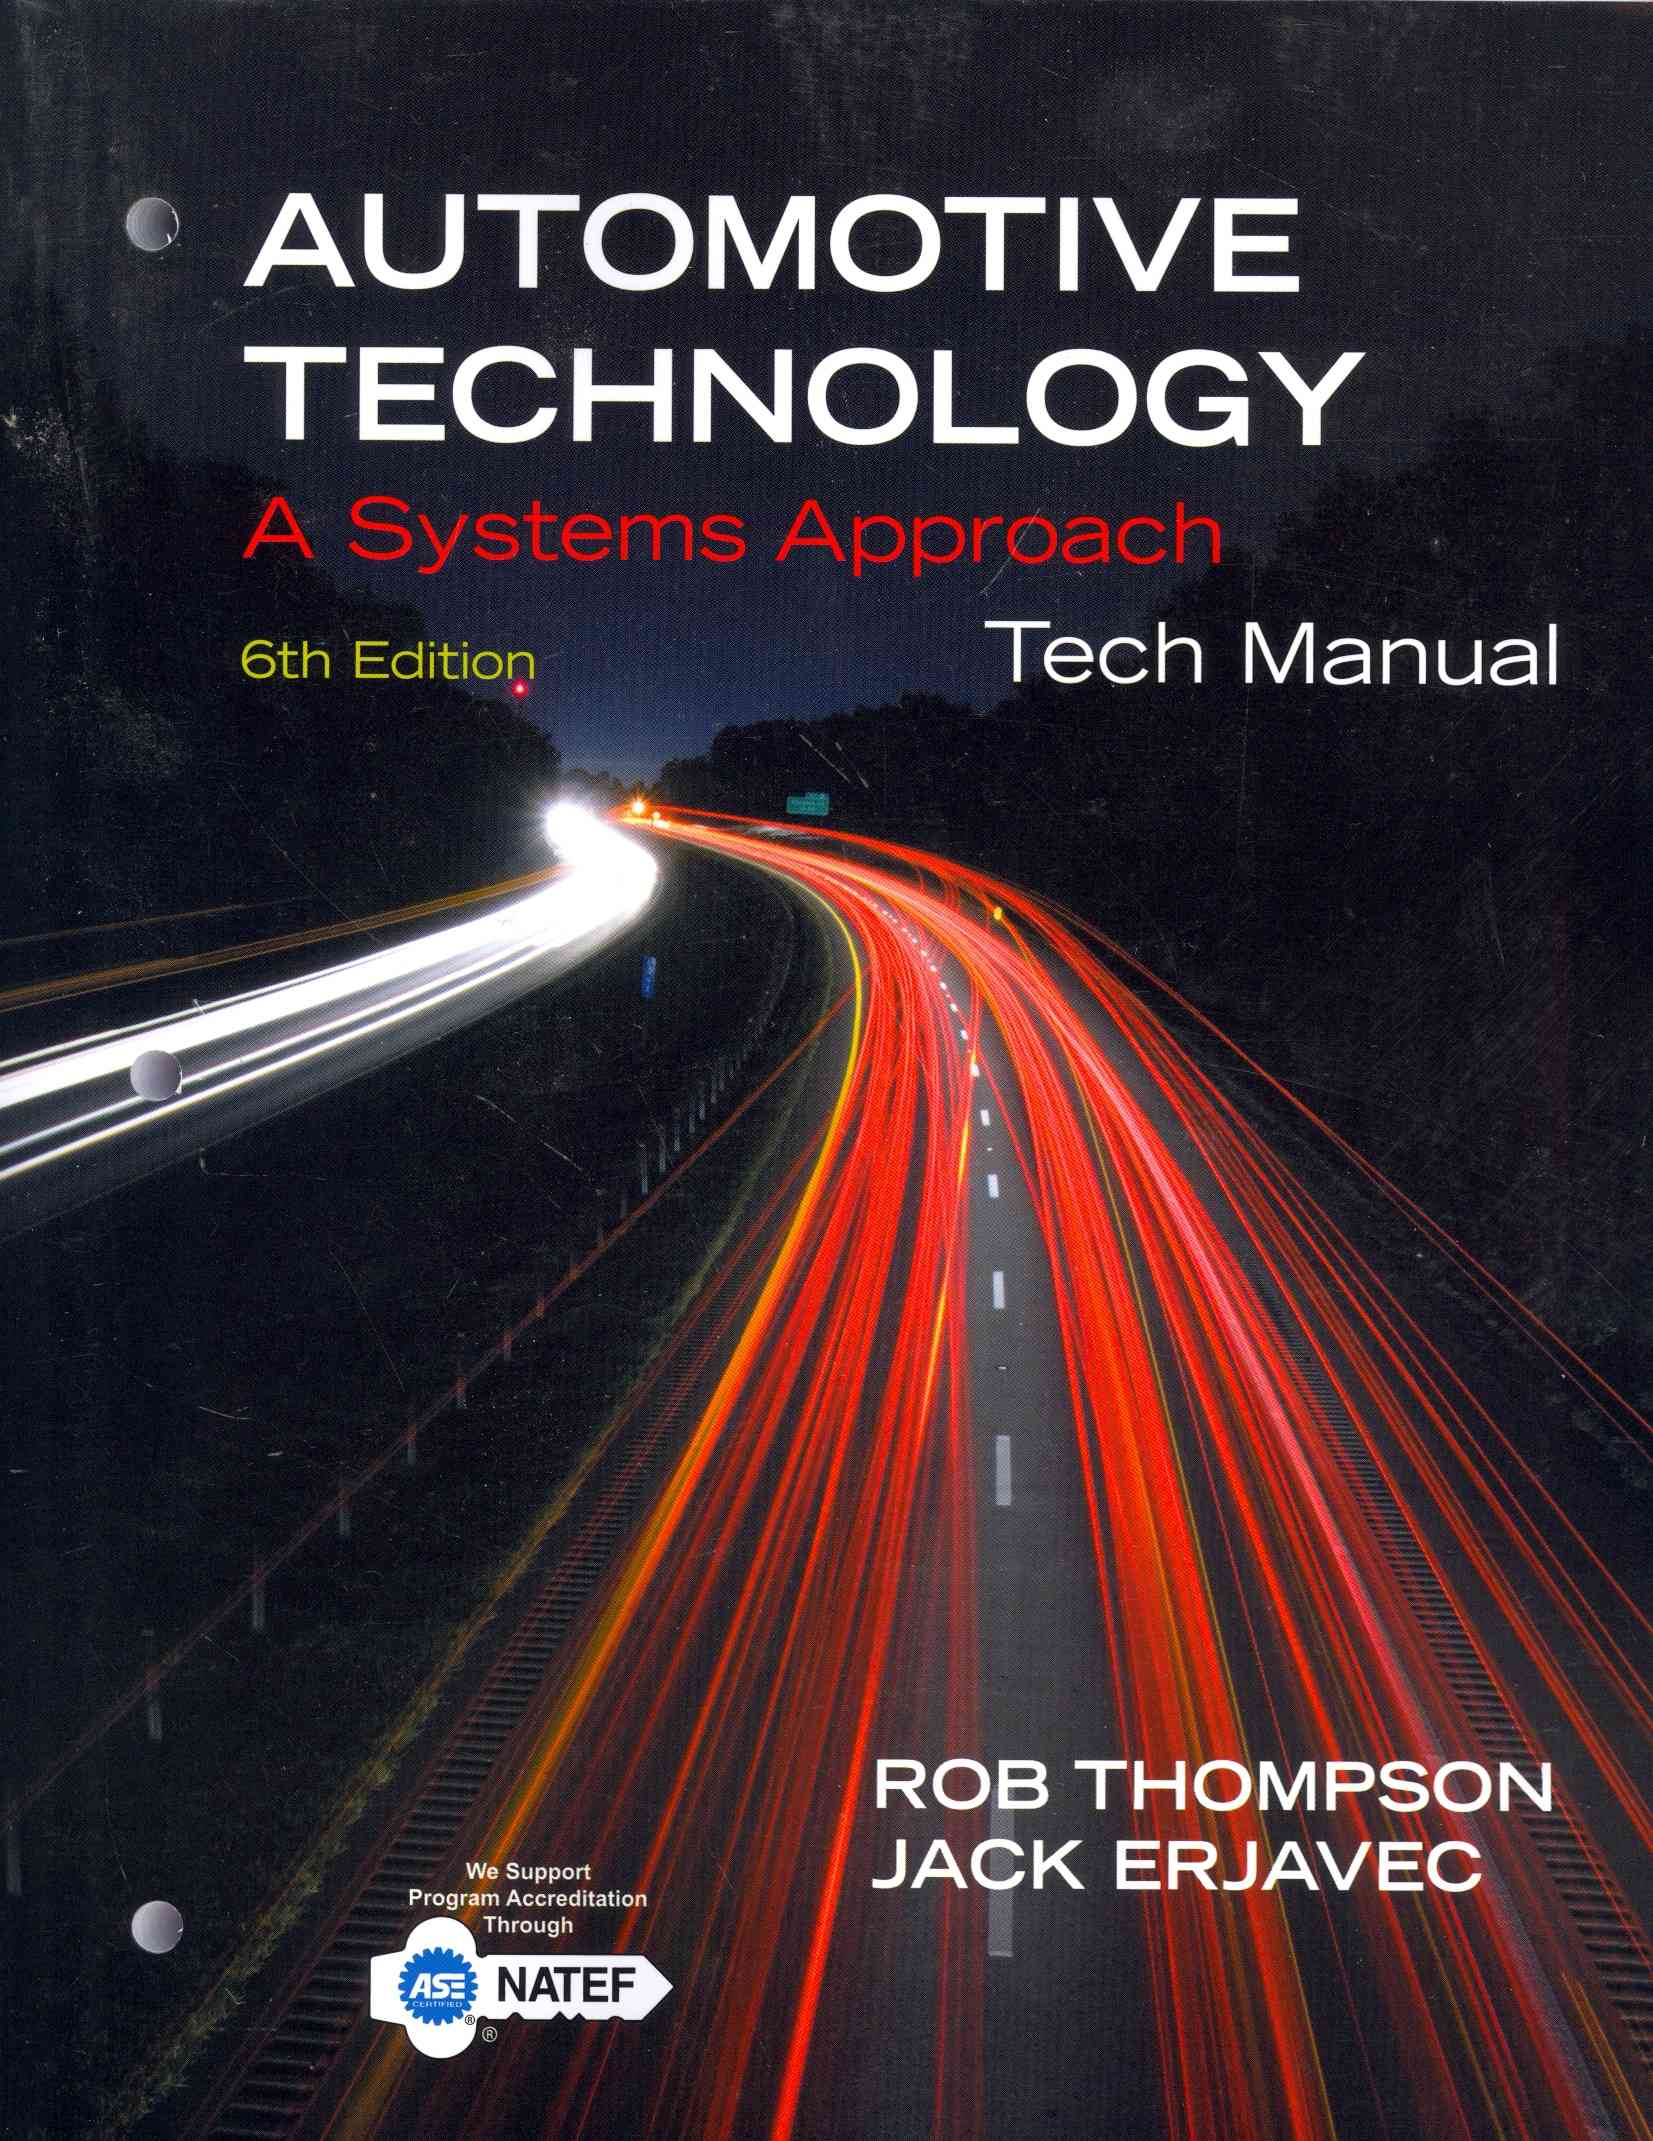 Automotive Technology Tech Manual By Erjavec, Jack/ Thompson, Rob